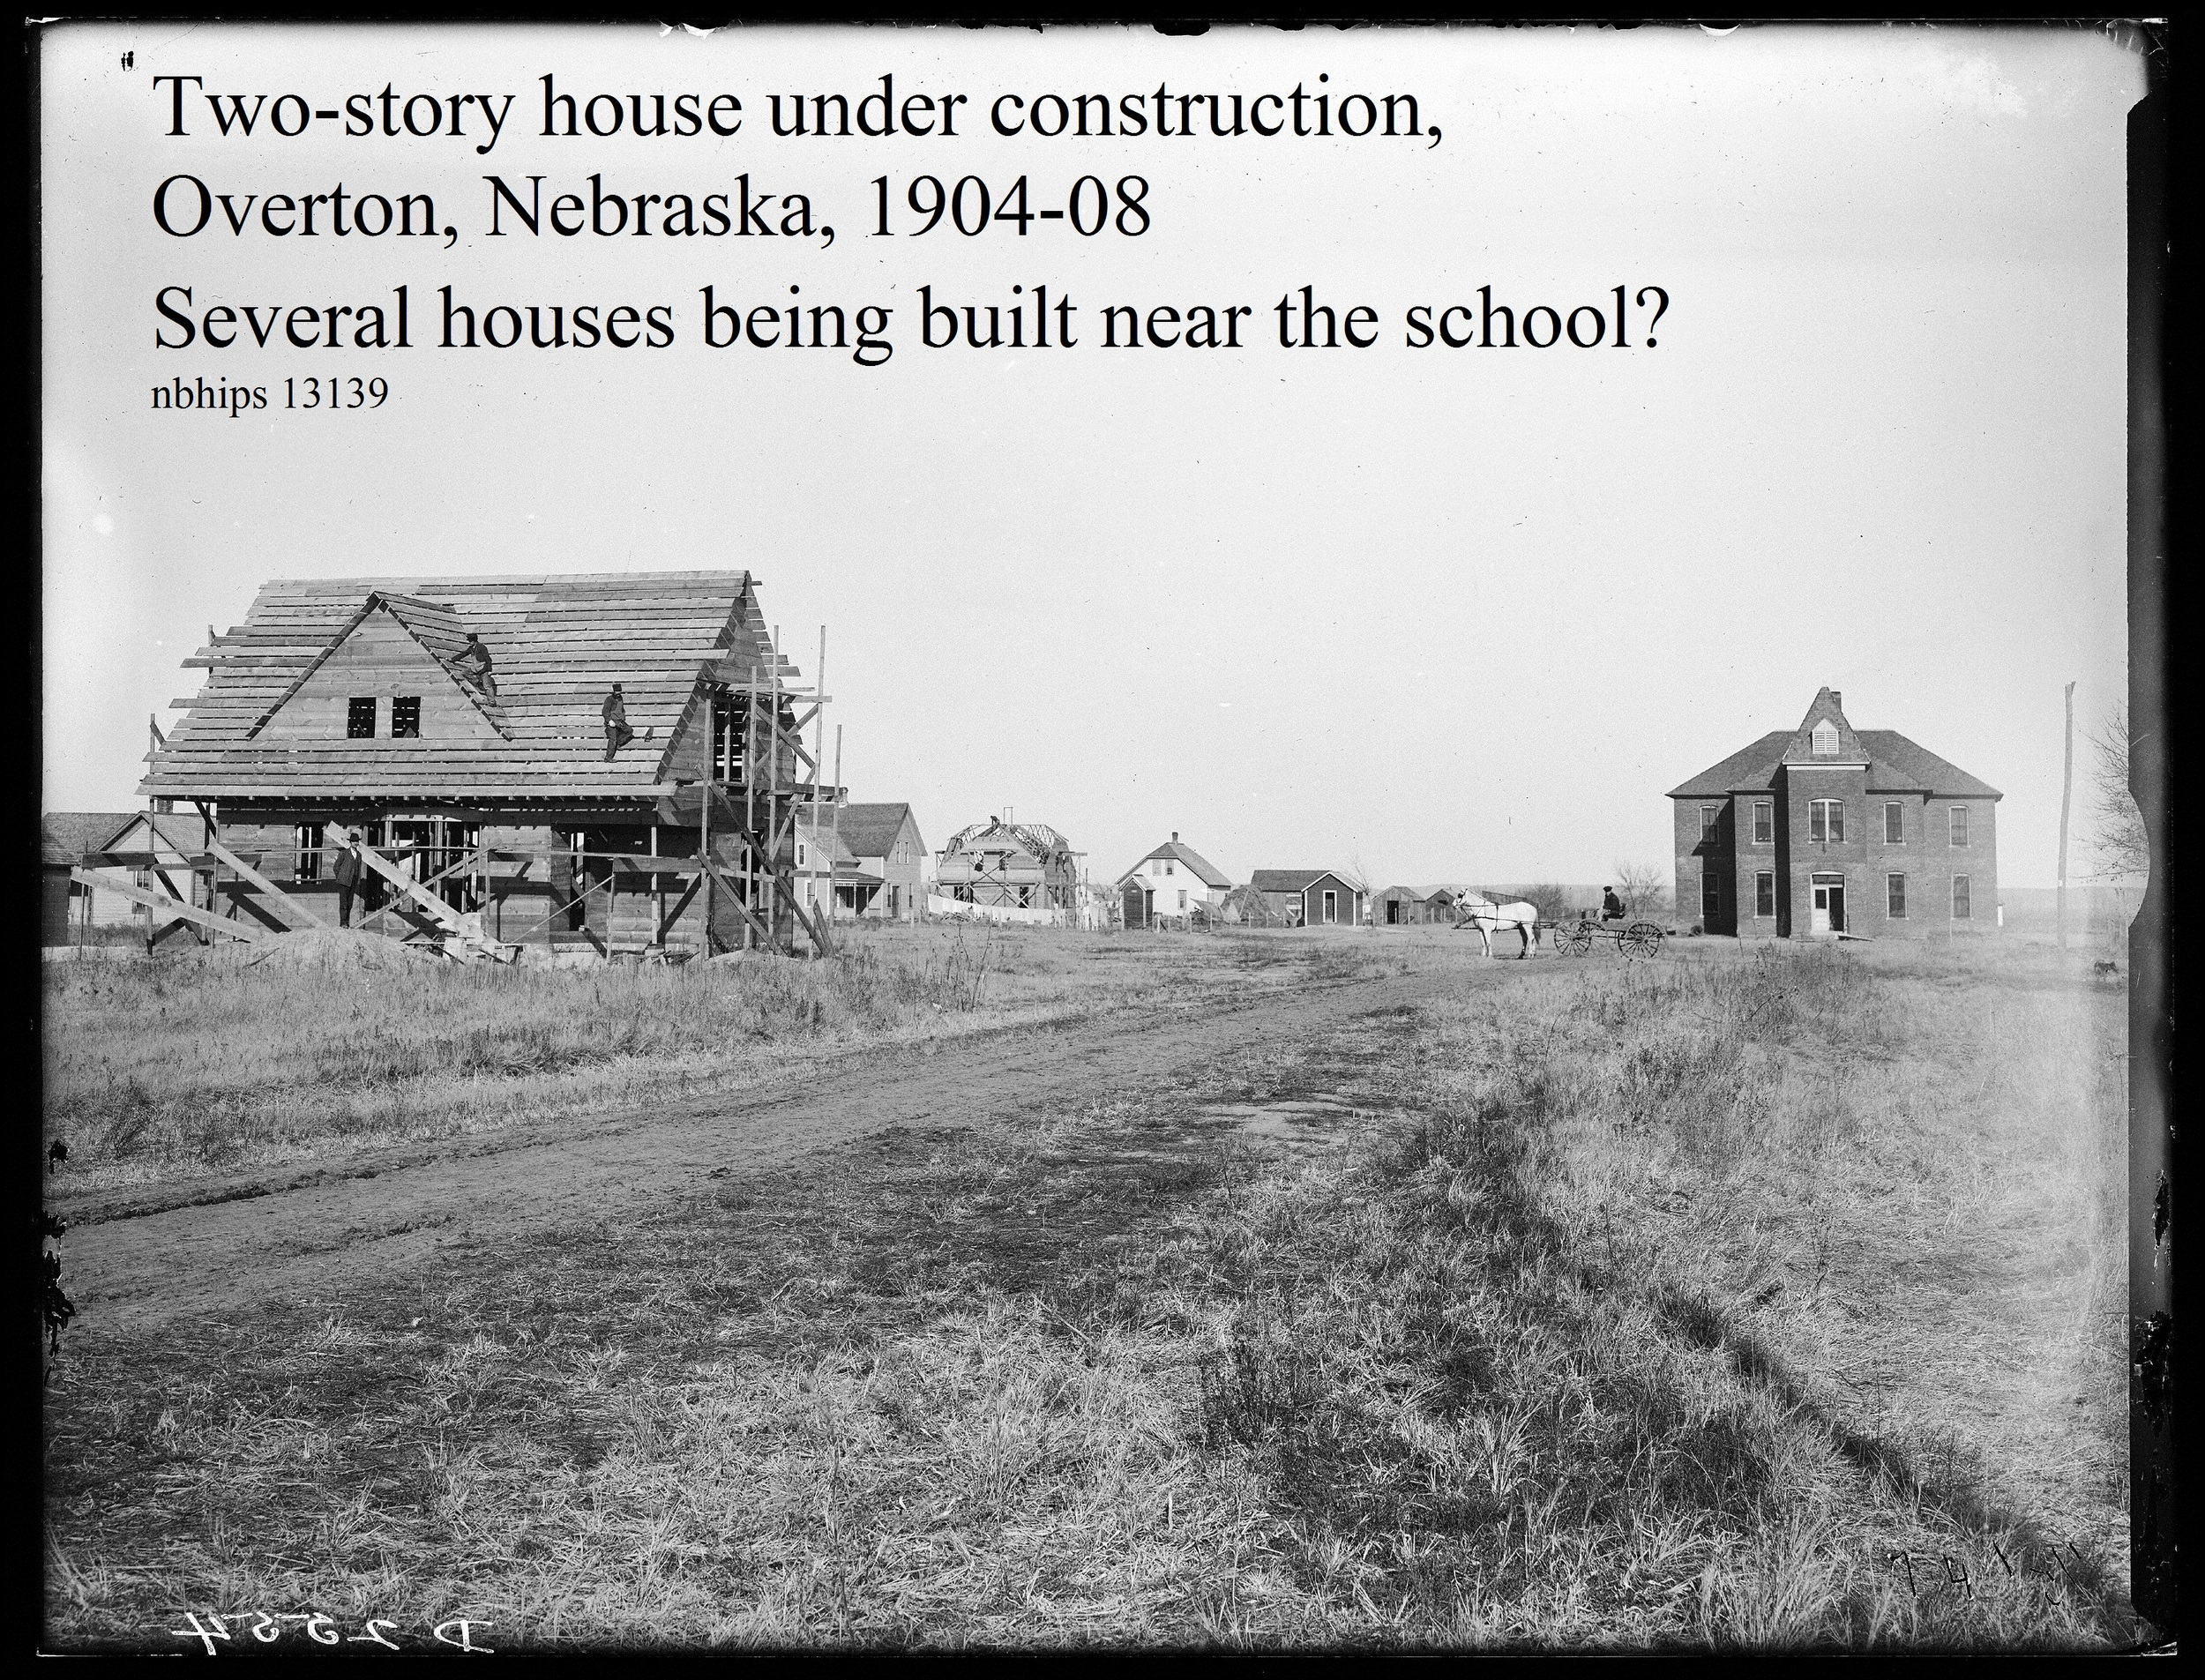 Butcher, Dawson County, Overton building houses in town, 1908.jpg